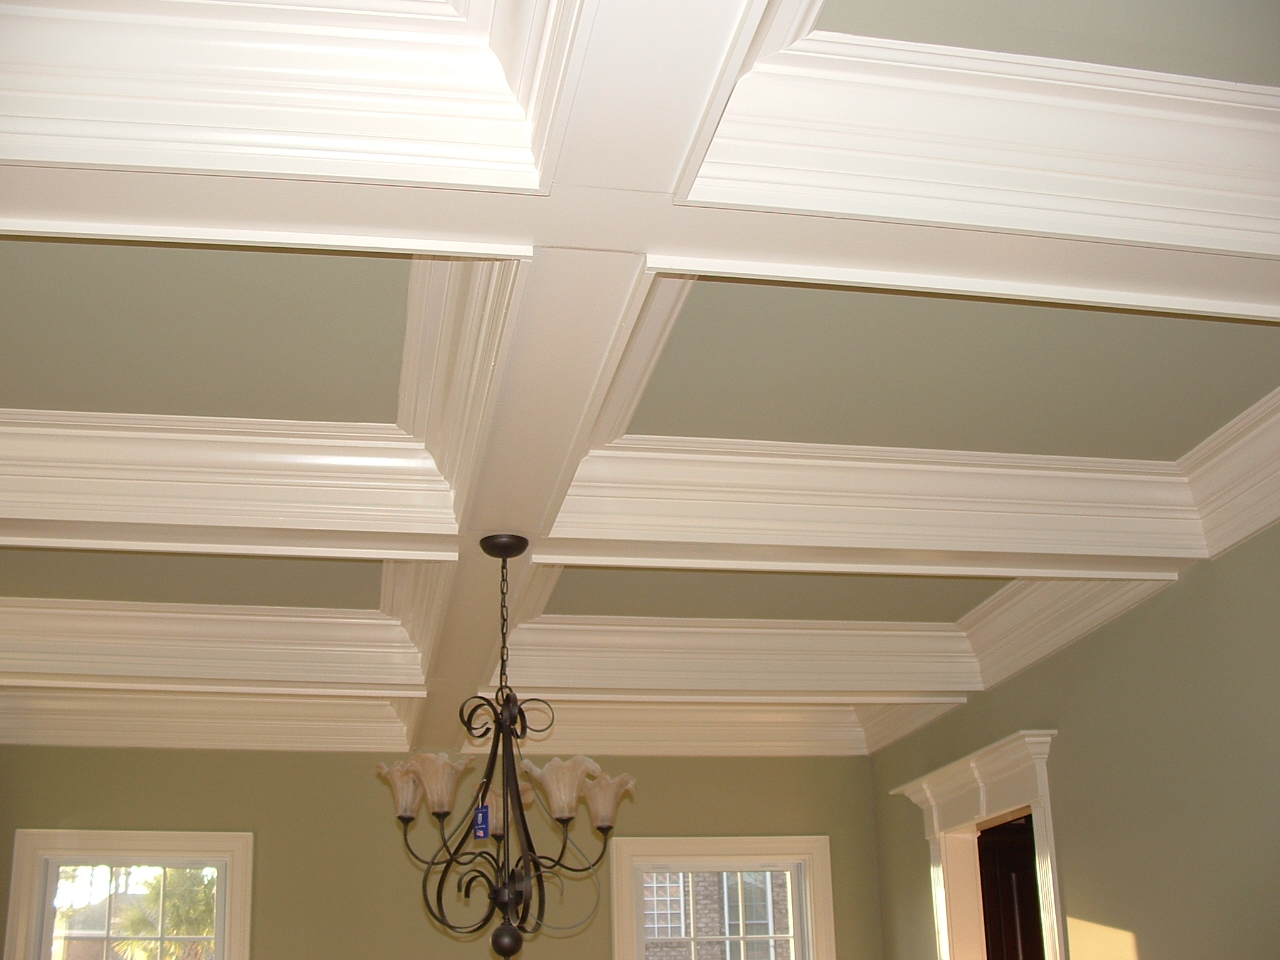 My everyday exceptional painted ceilings with beams